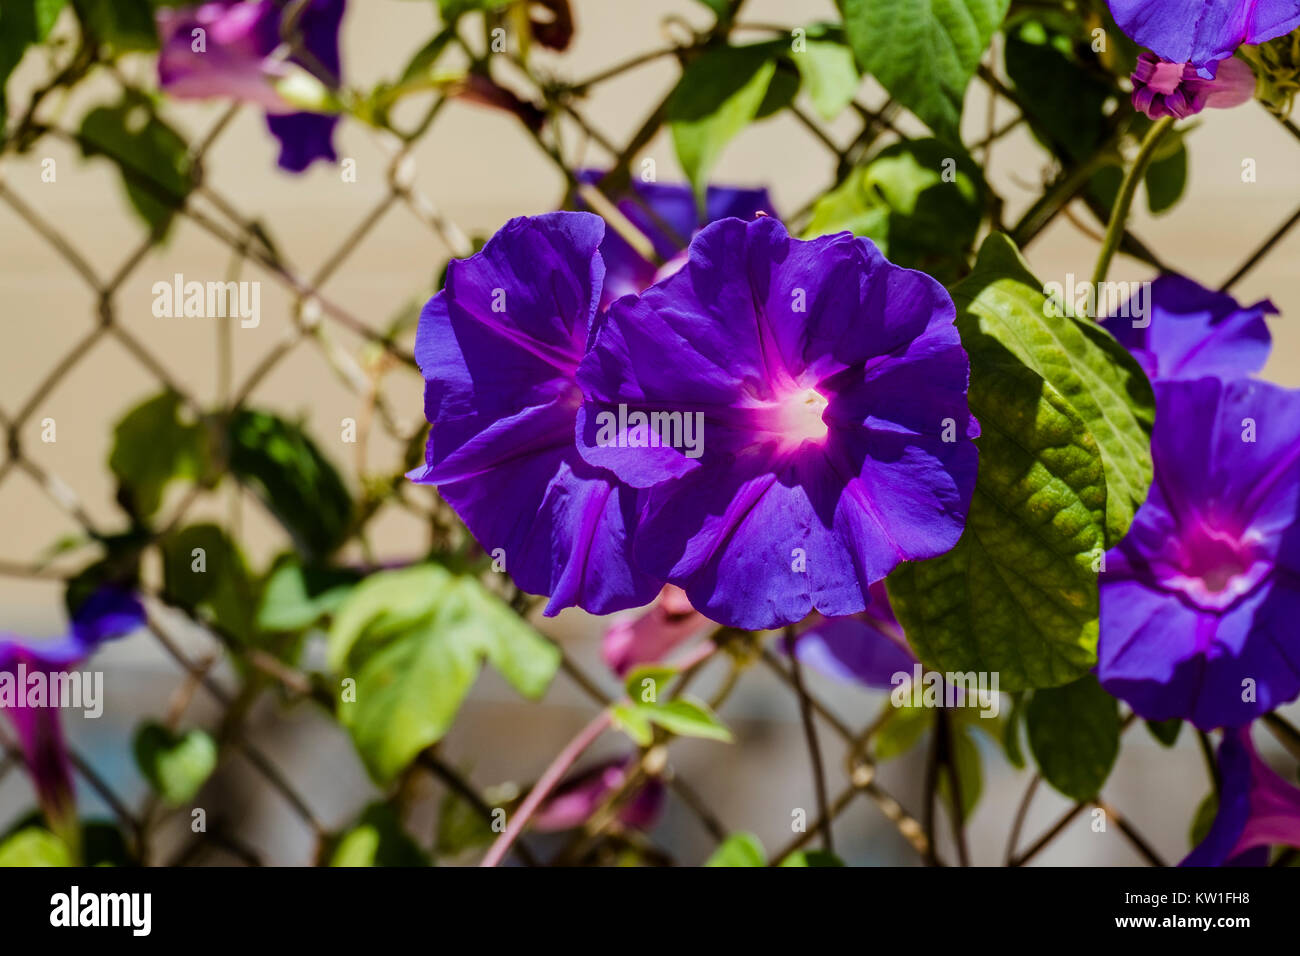 Blue flowers morning glory of the Ipomea genus of the family Convolvulaceae (Ipomea Purpurea) - Stock Image